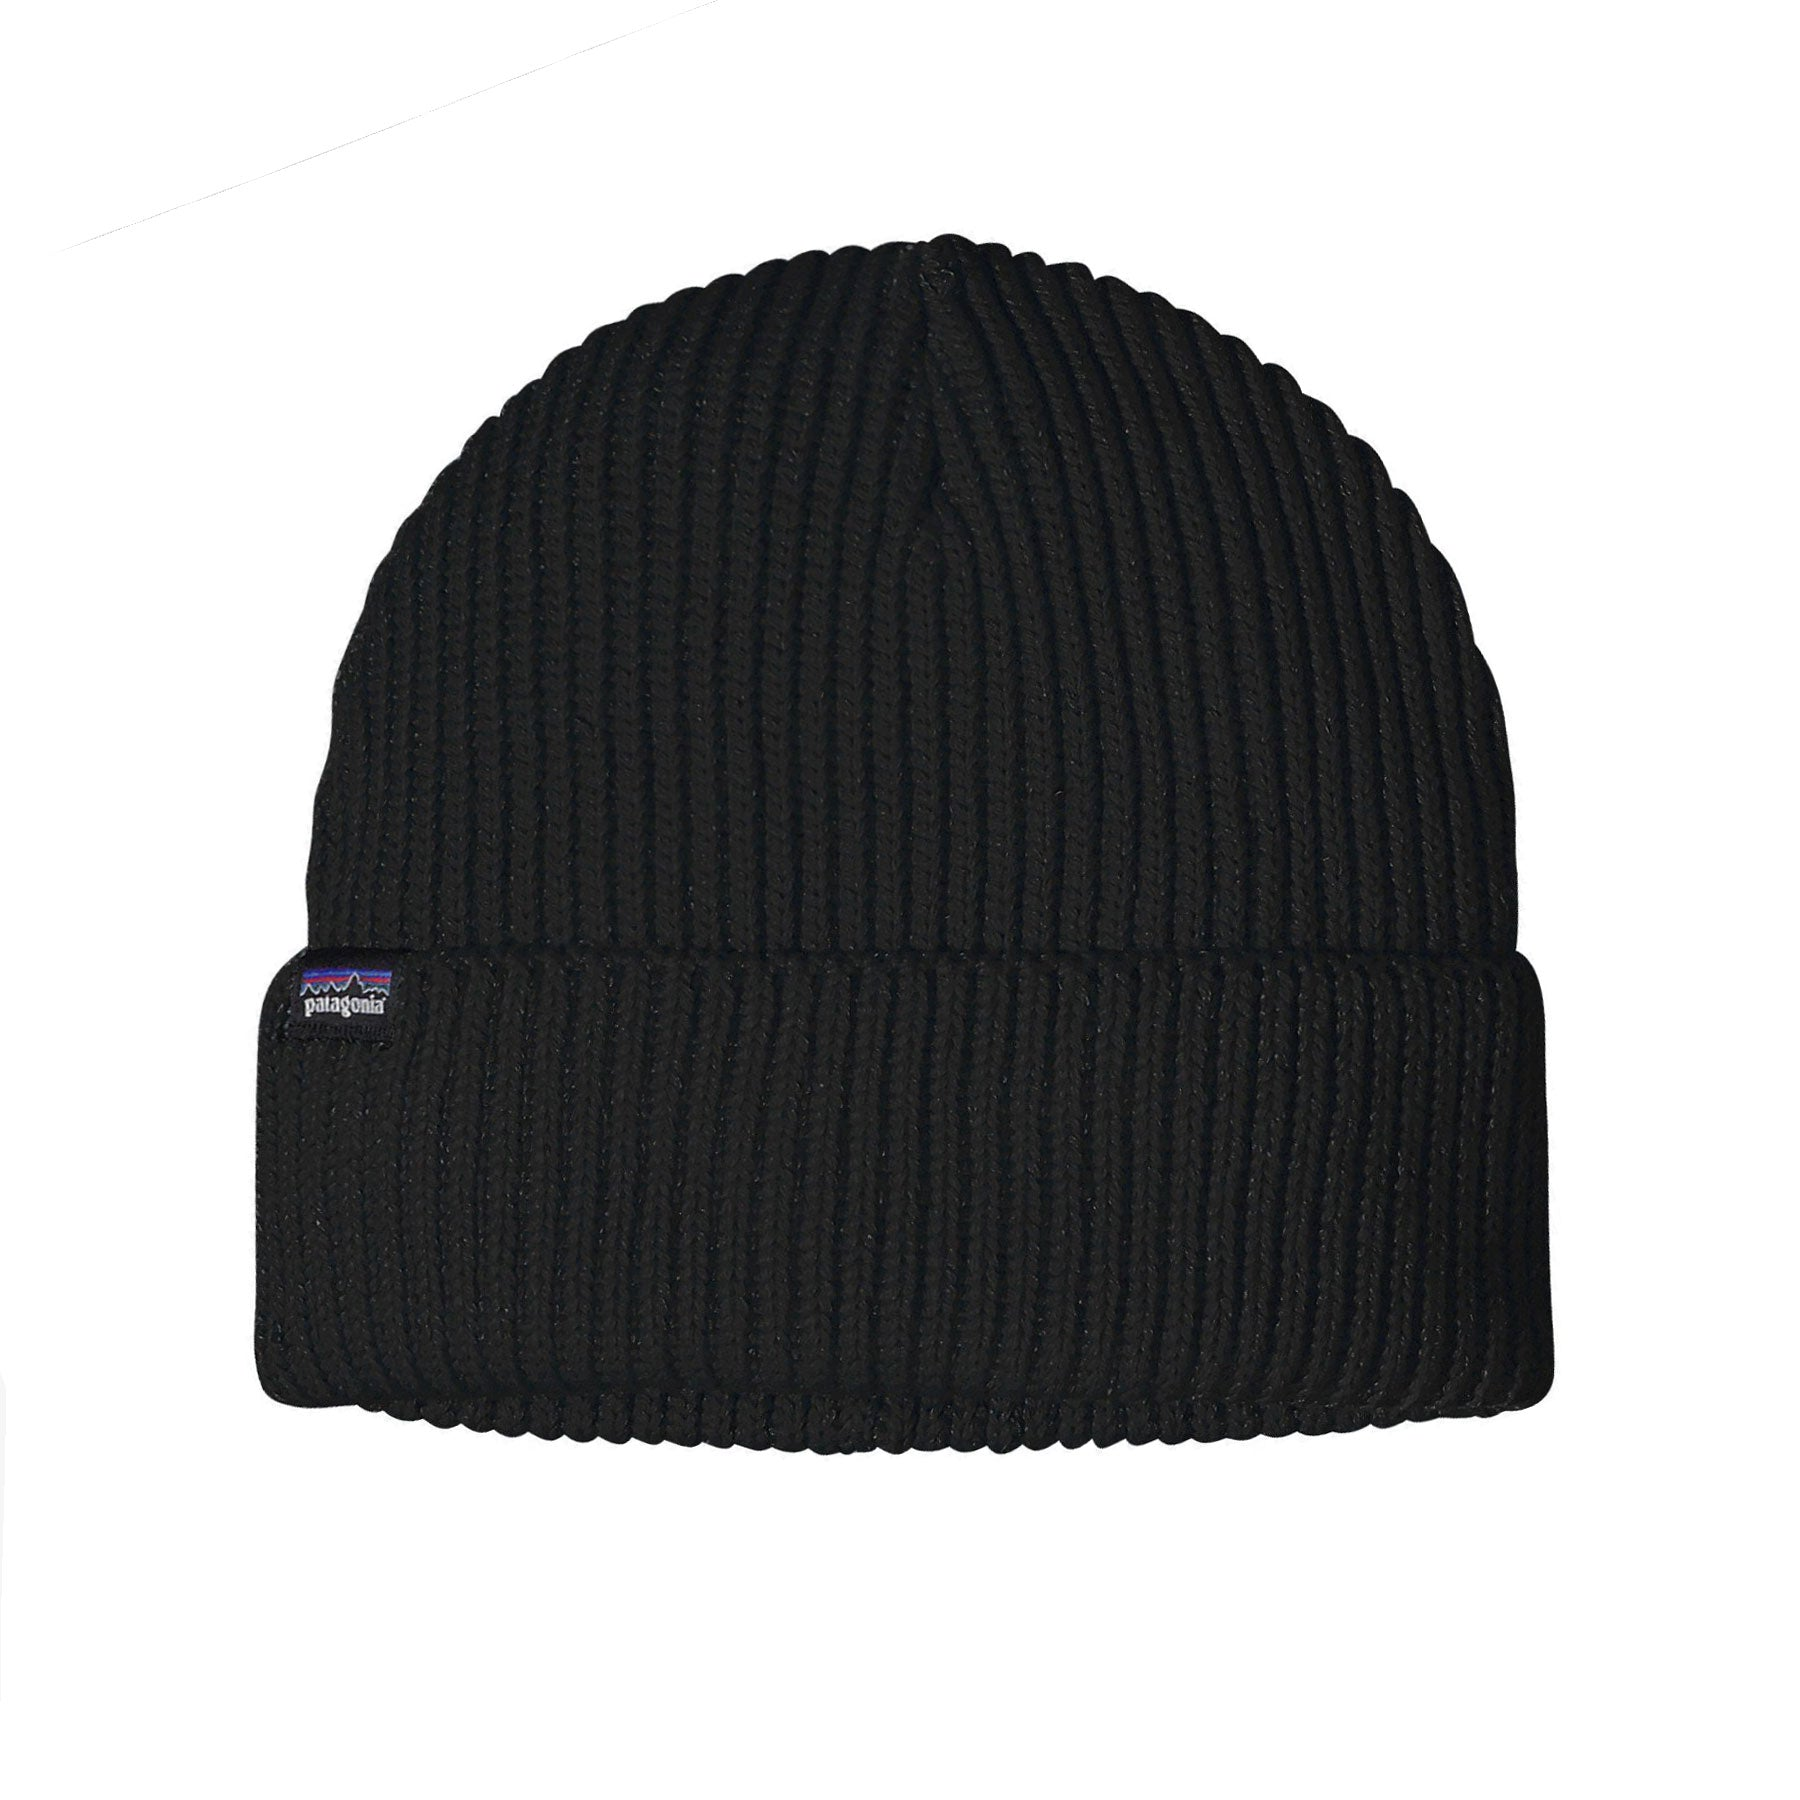 Patagonia Fishermans Rolled Beanie Product Photo #1